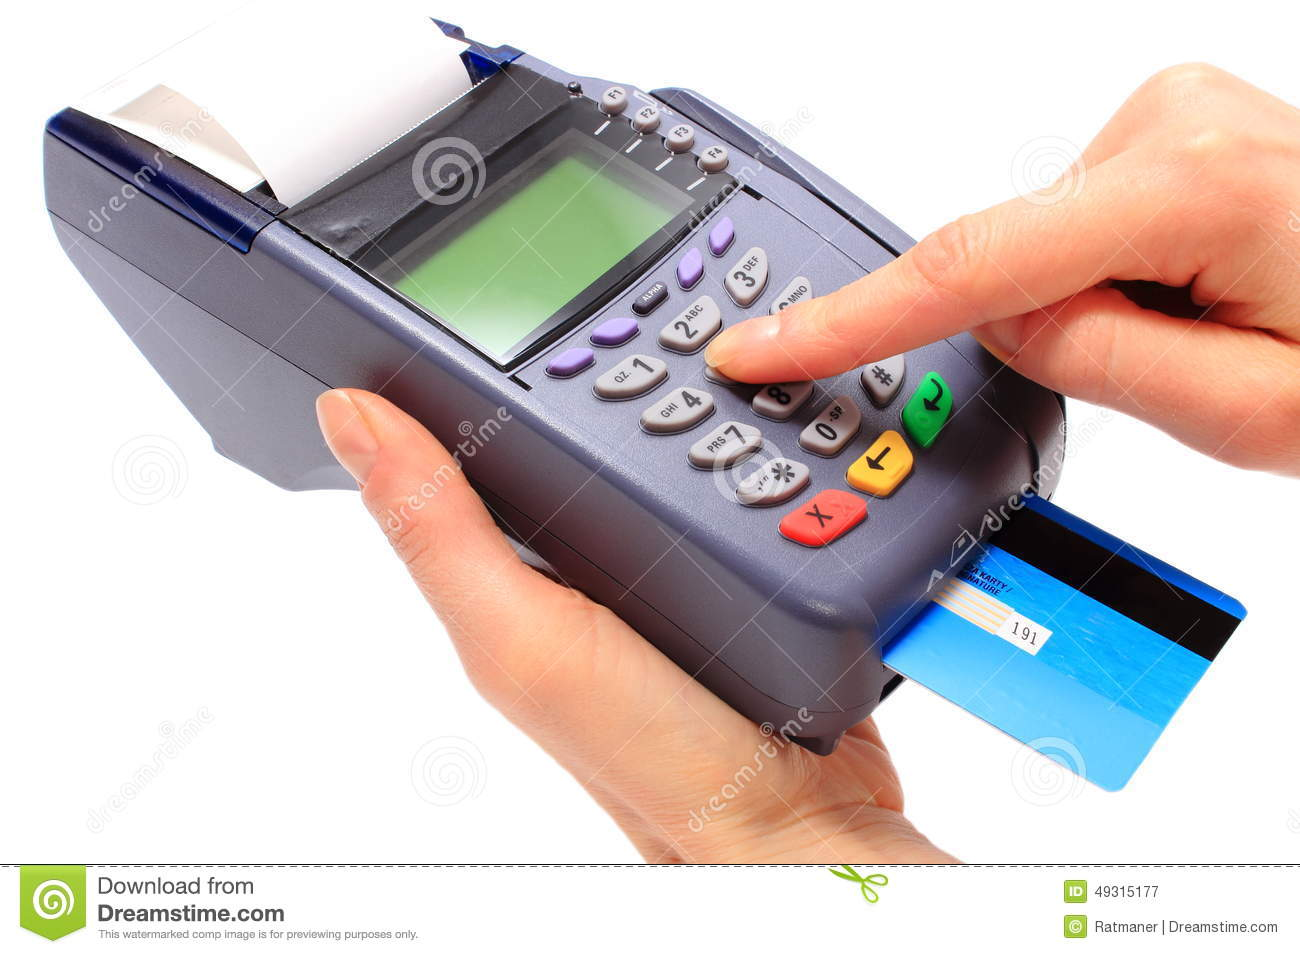 how to develop credit card terminal